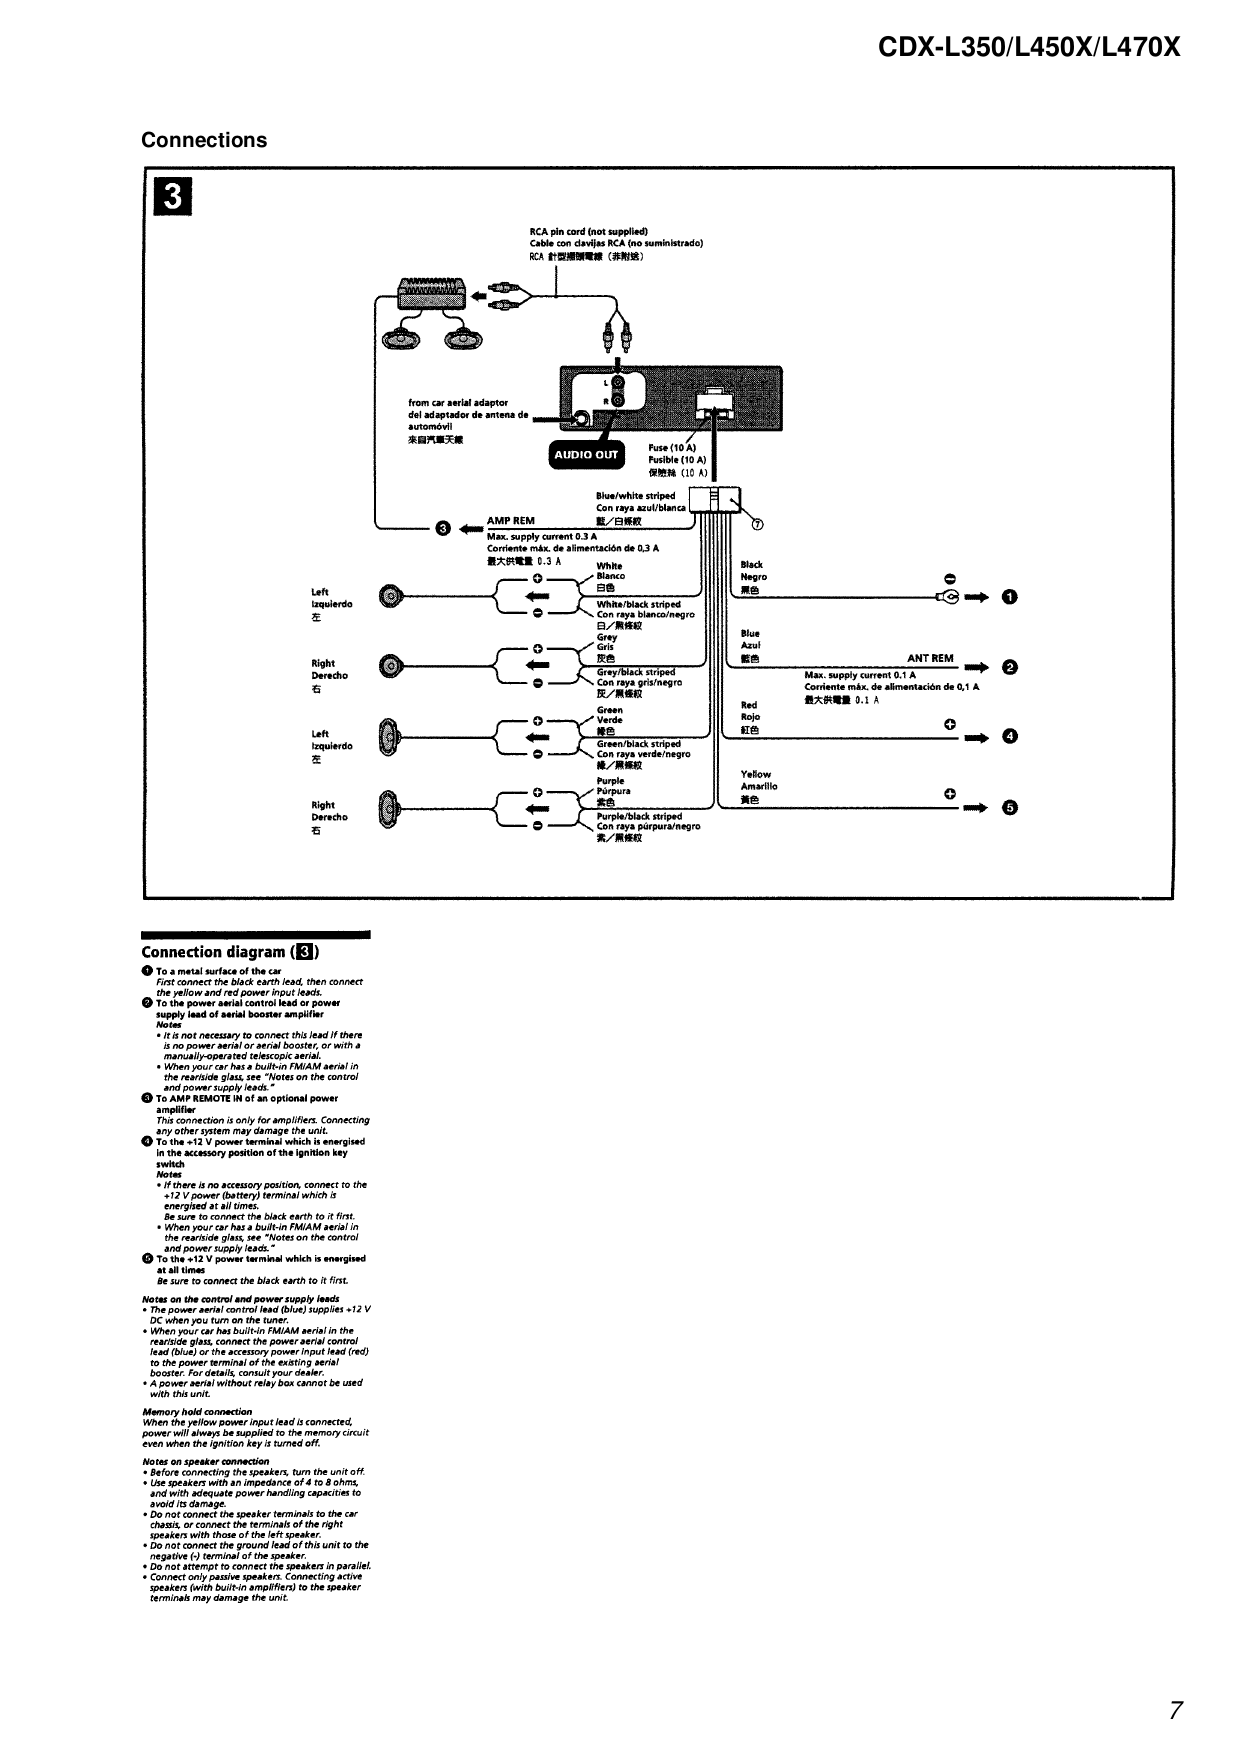 Sony Cdx L350 Wiring Diagram